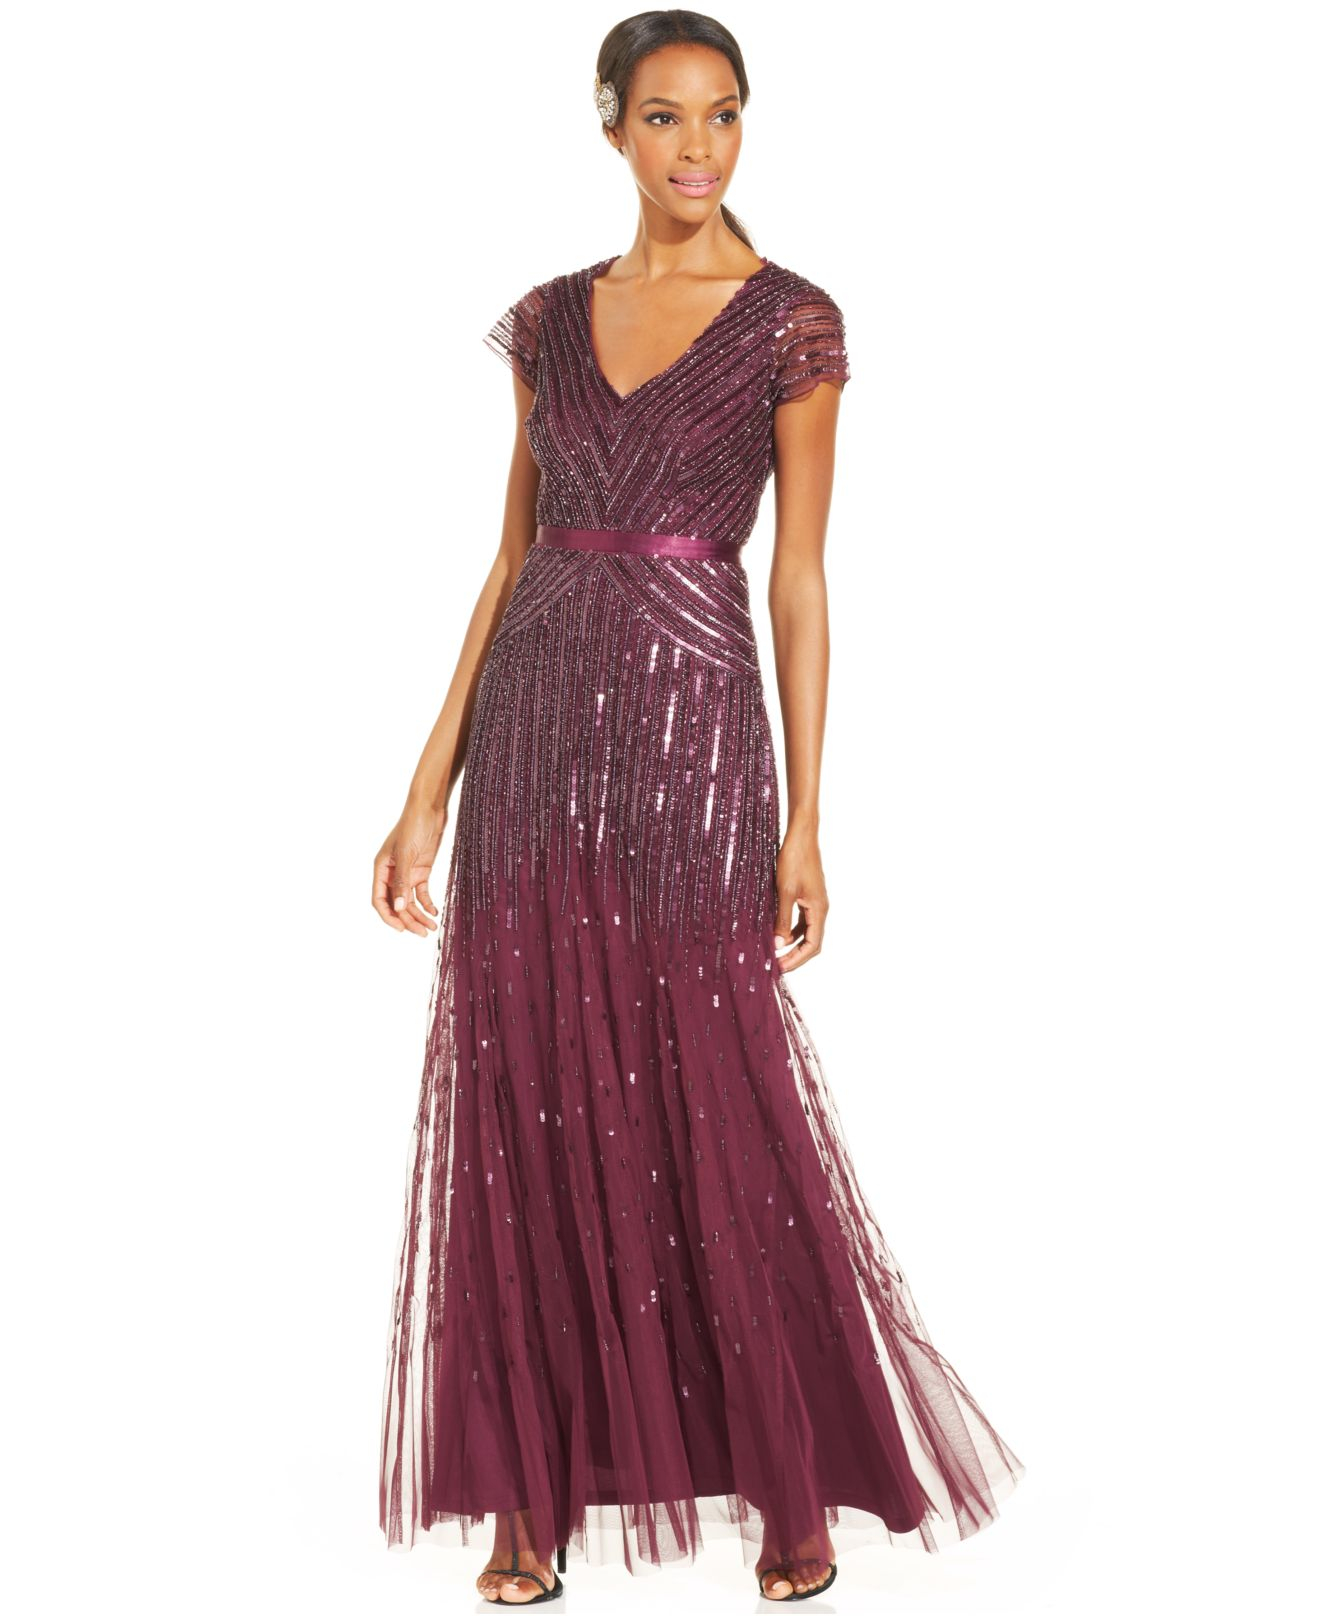 Lyst - Adrianna Papell Cap-sleeve Beaded Sequined Gown in Pink